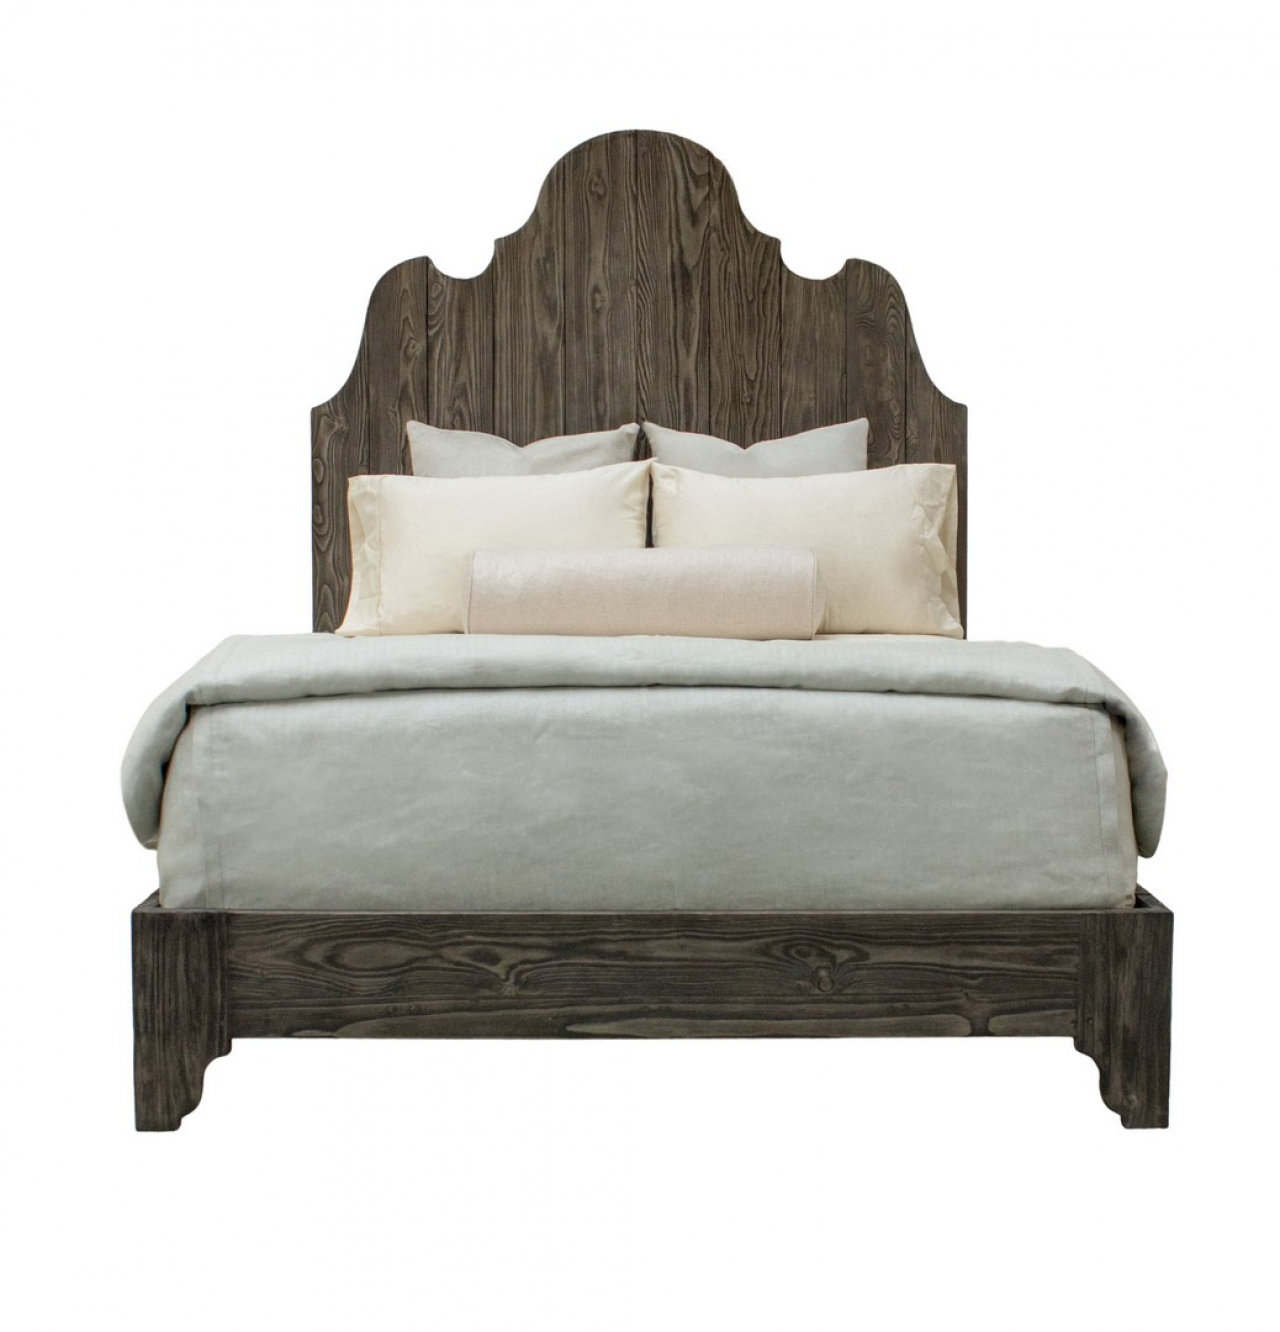 Find the  Oly Studio Leisl Bed  on C5, get the mattress on C15…